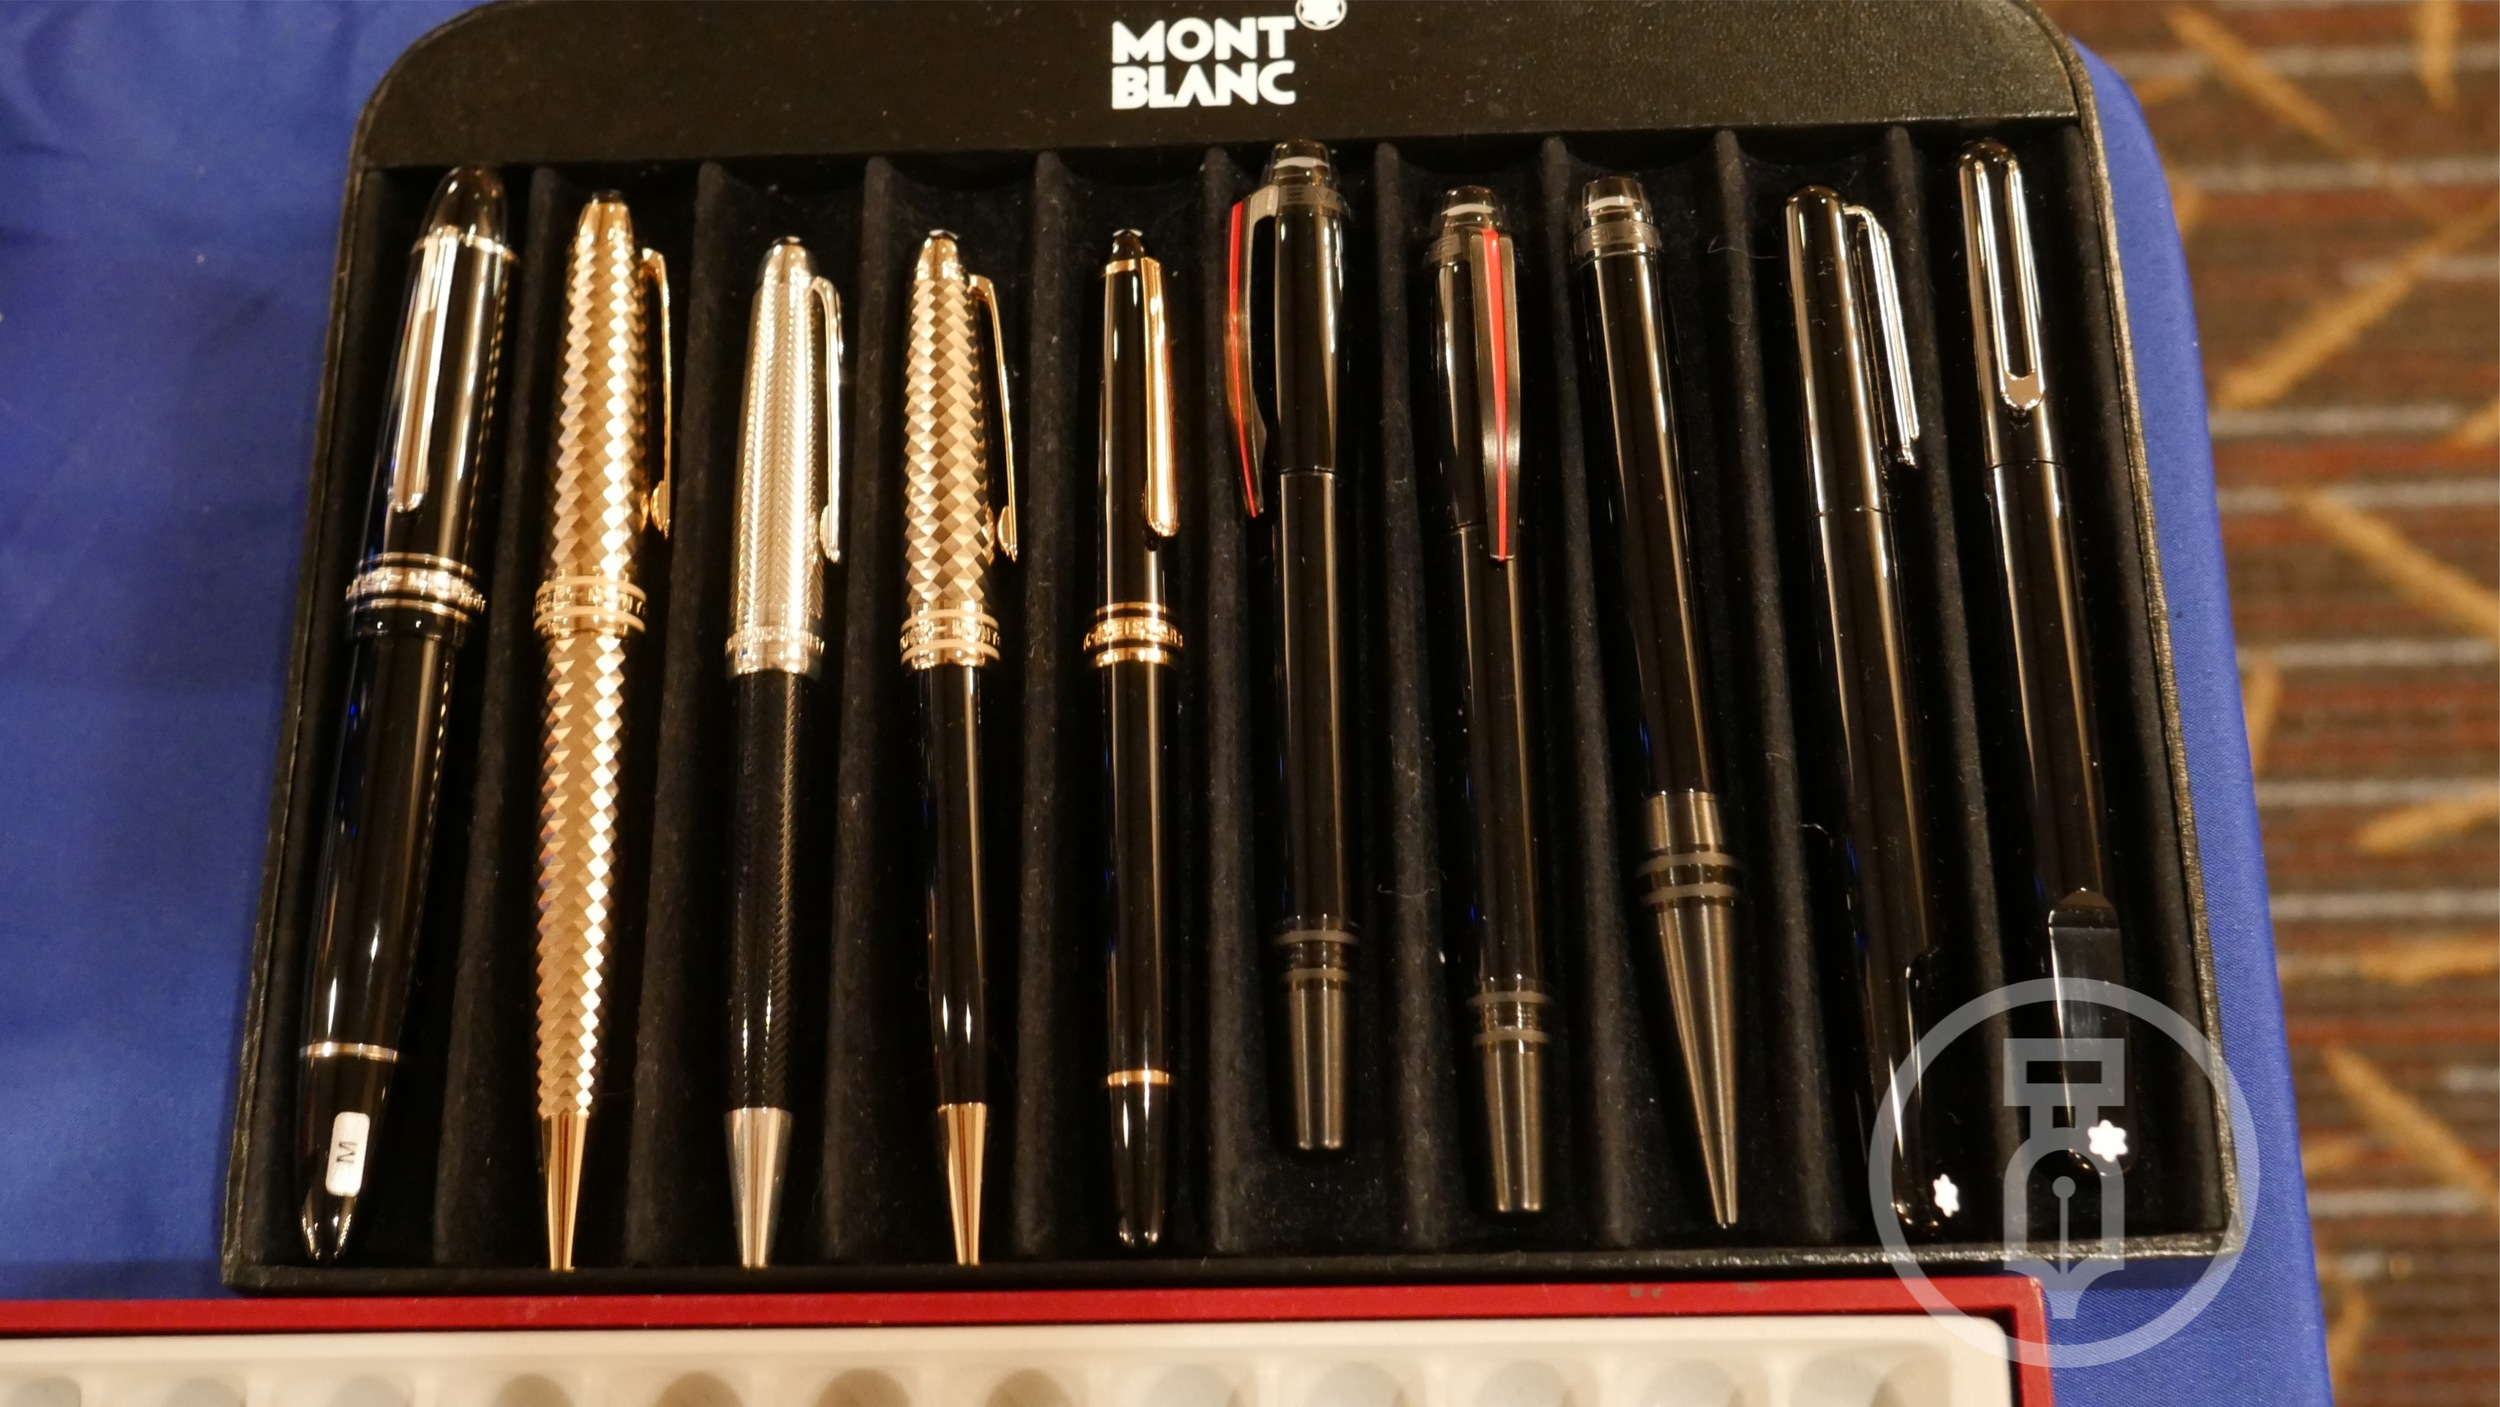 The Anderson's had Montblanc